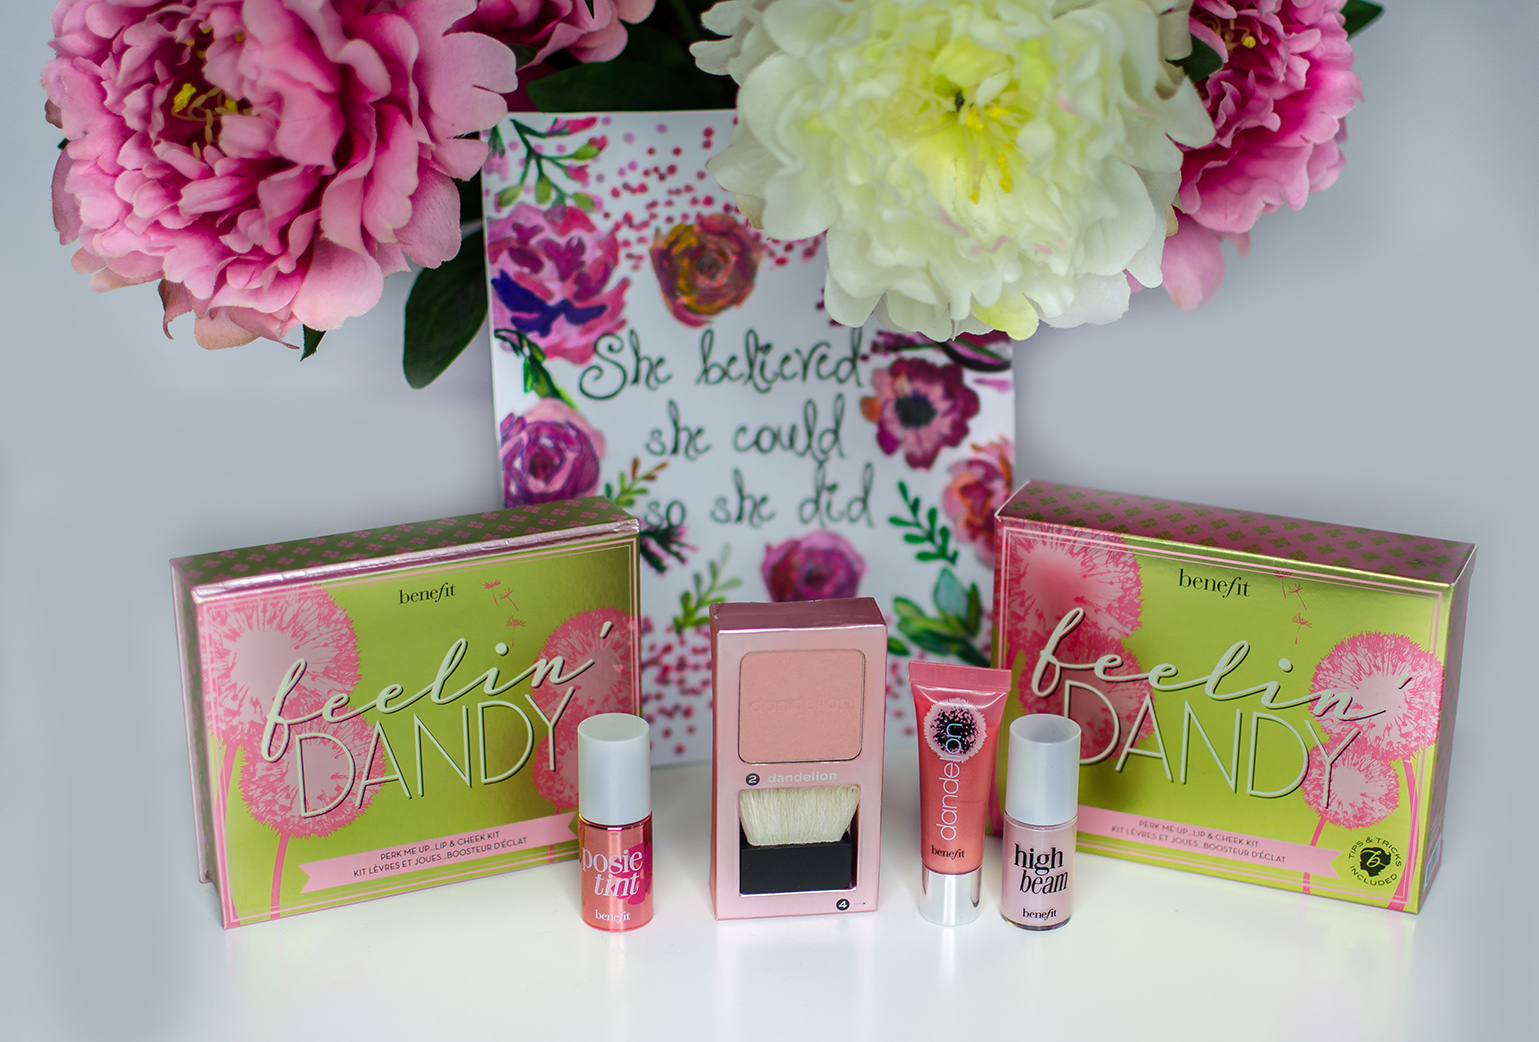 benefit cosmetics mini kit